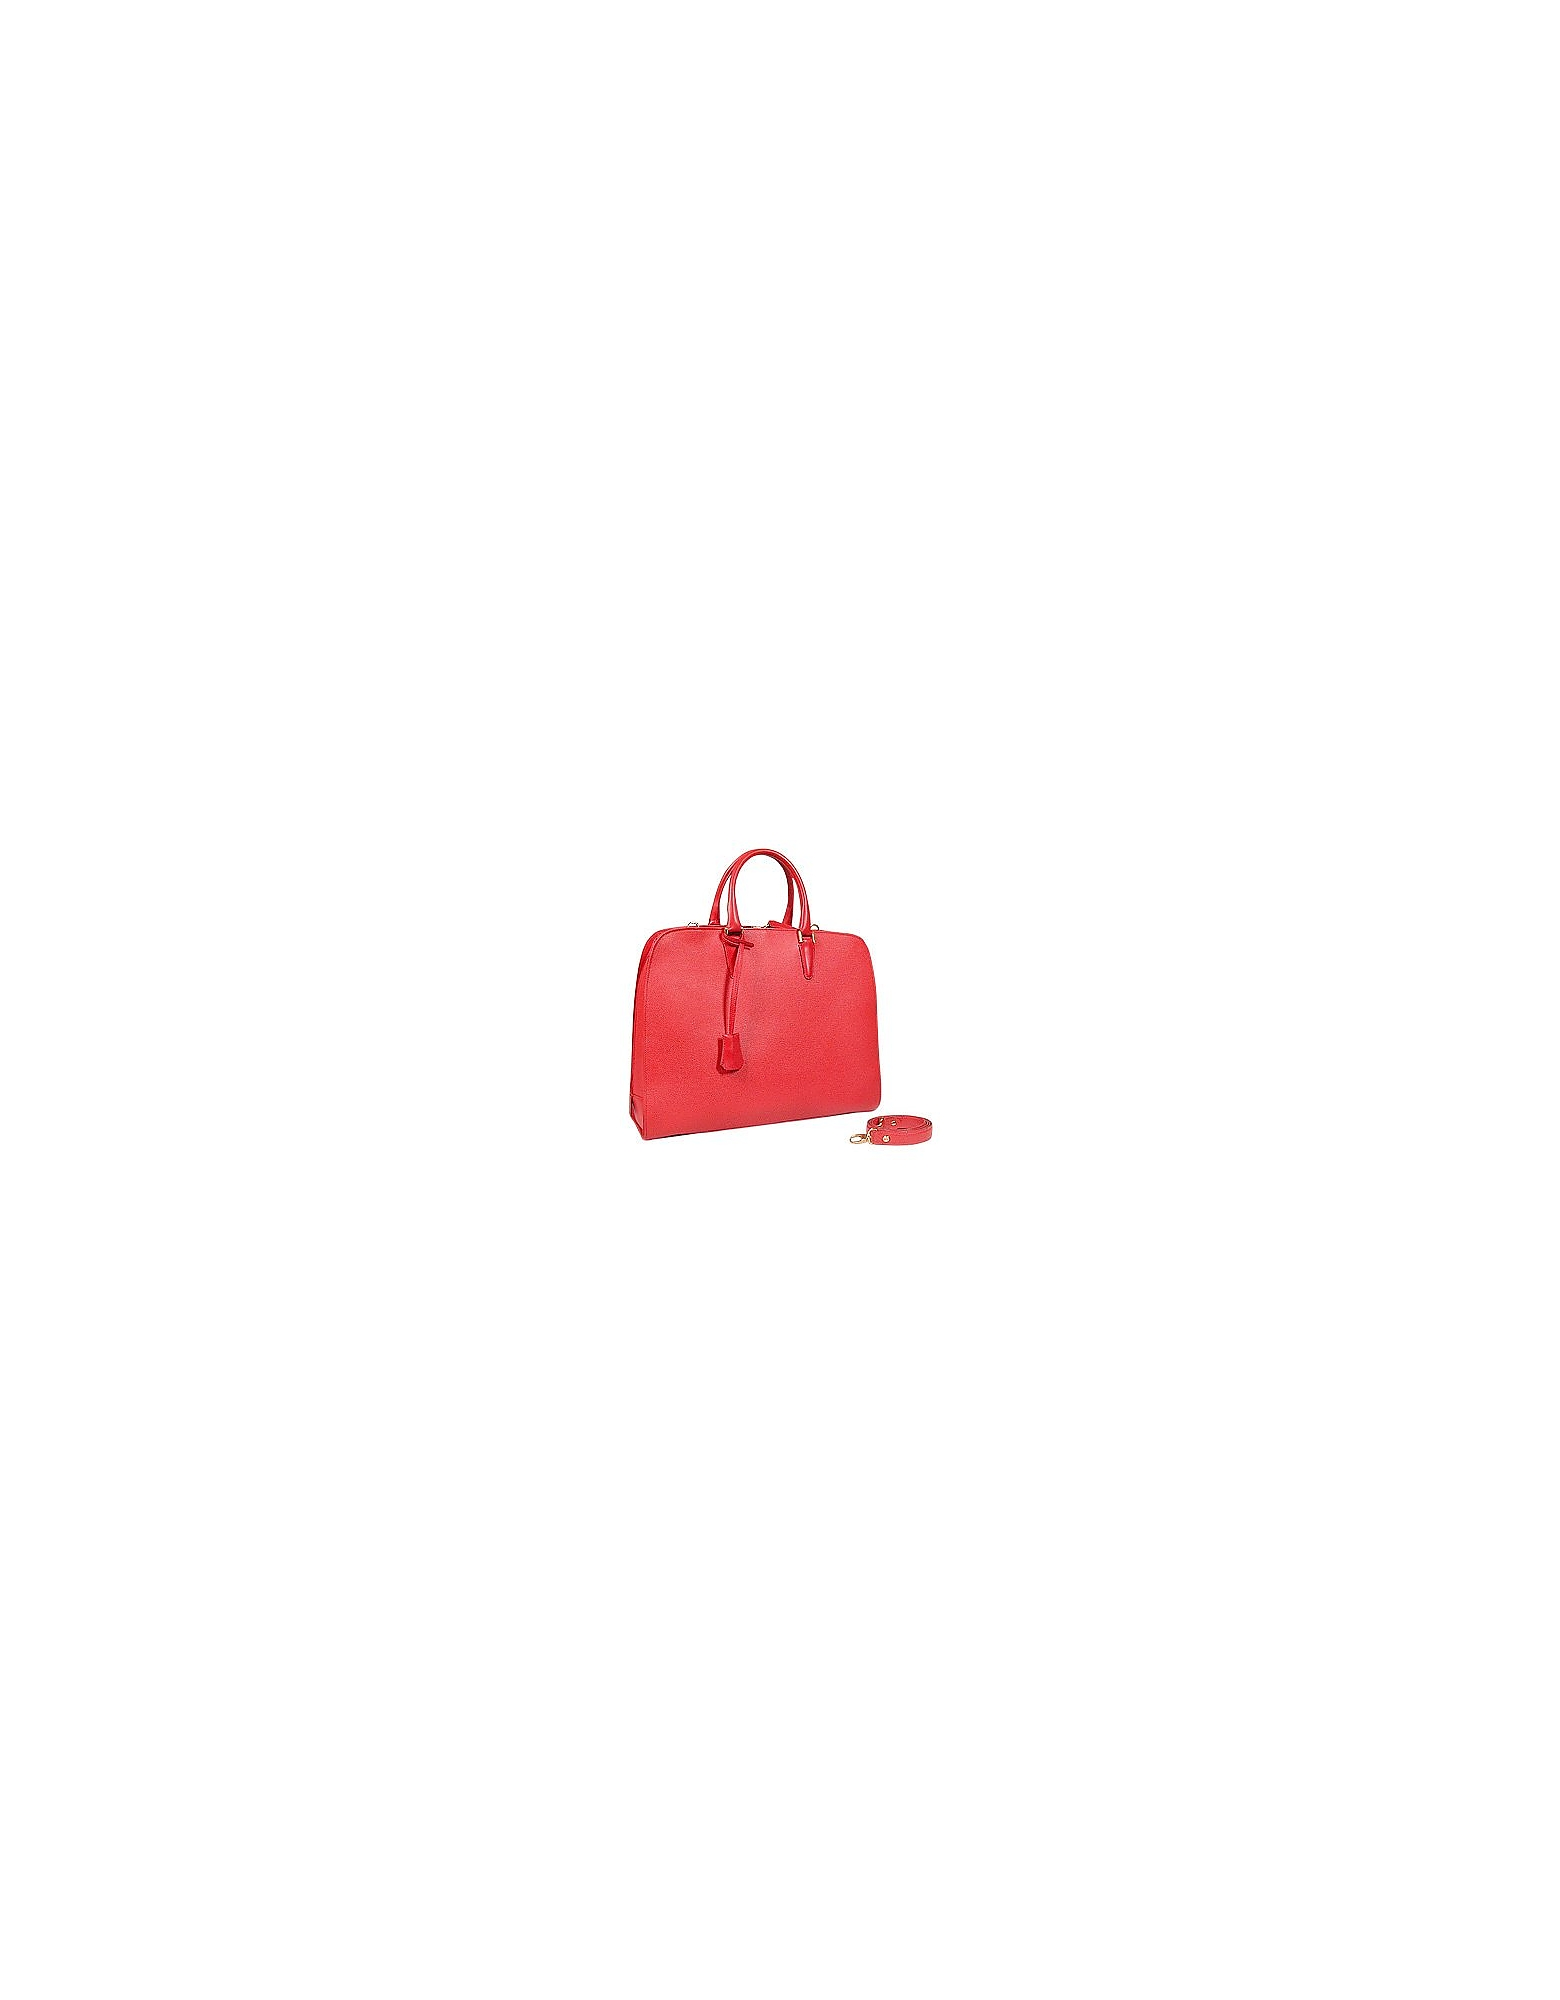 Fontanelli Briefcases, Red Leather Ladies' Briefcase